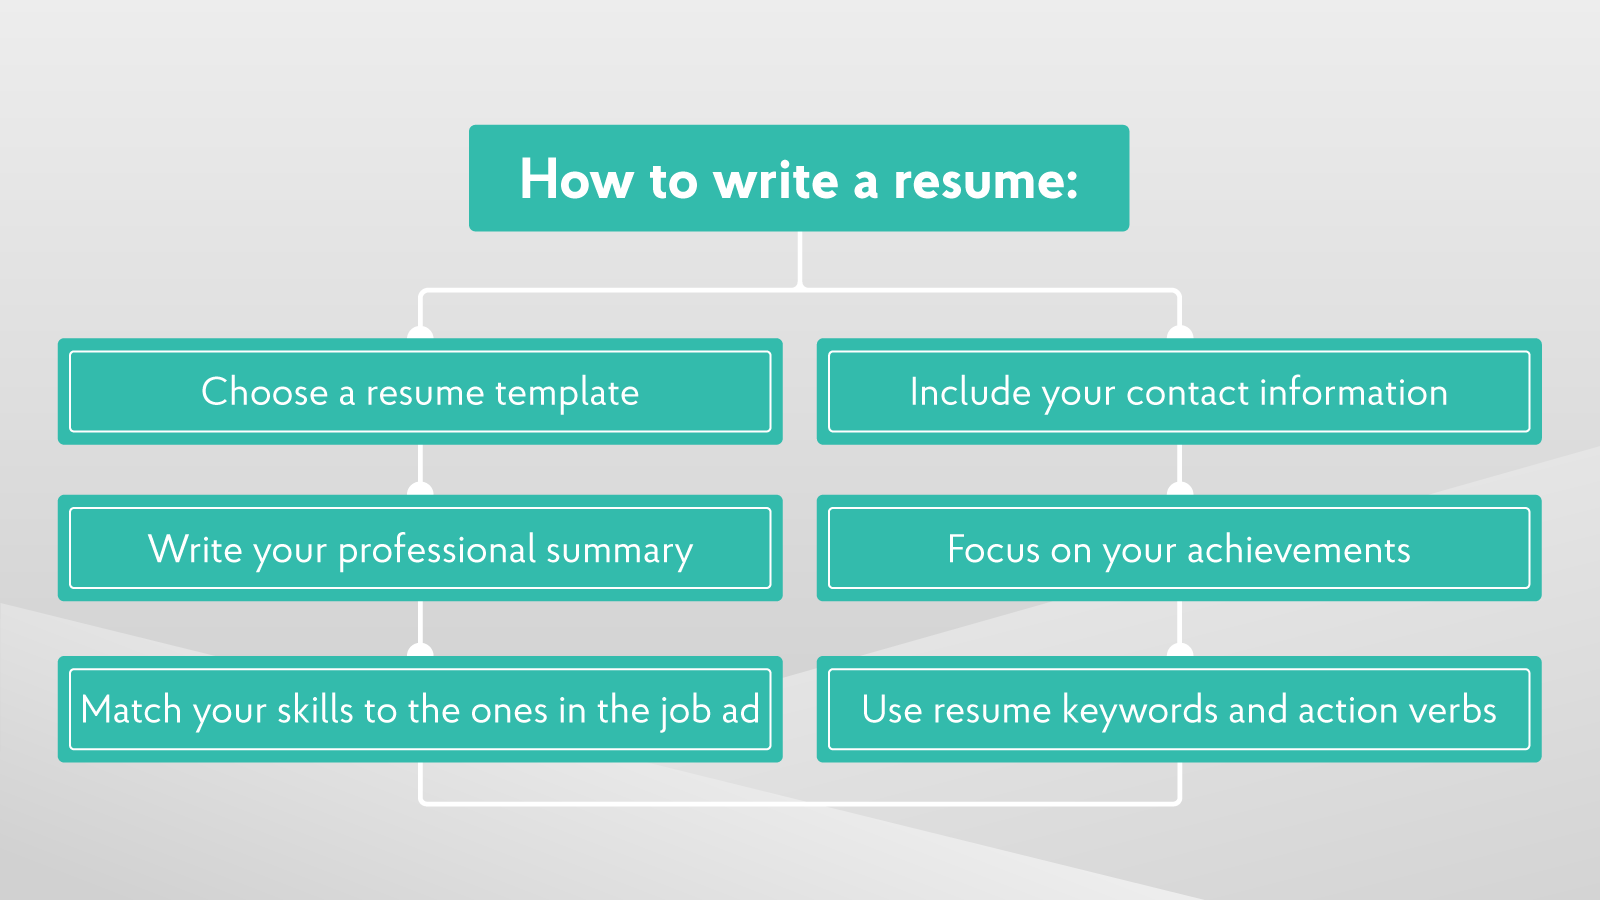 how to write a resume step by step